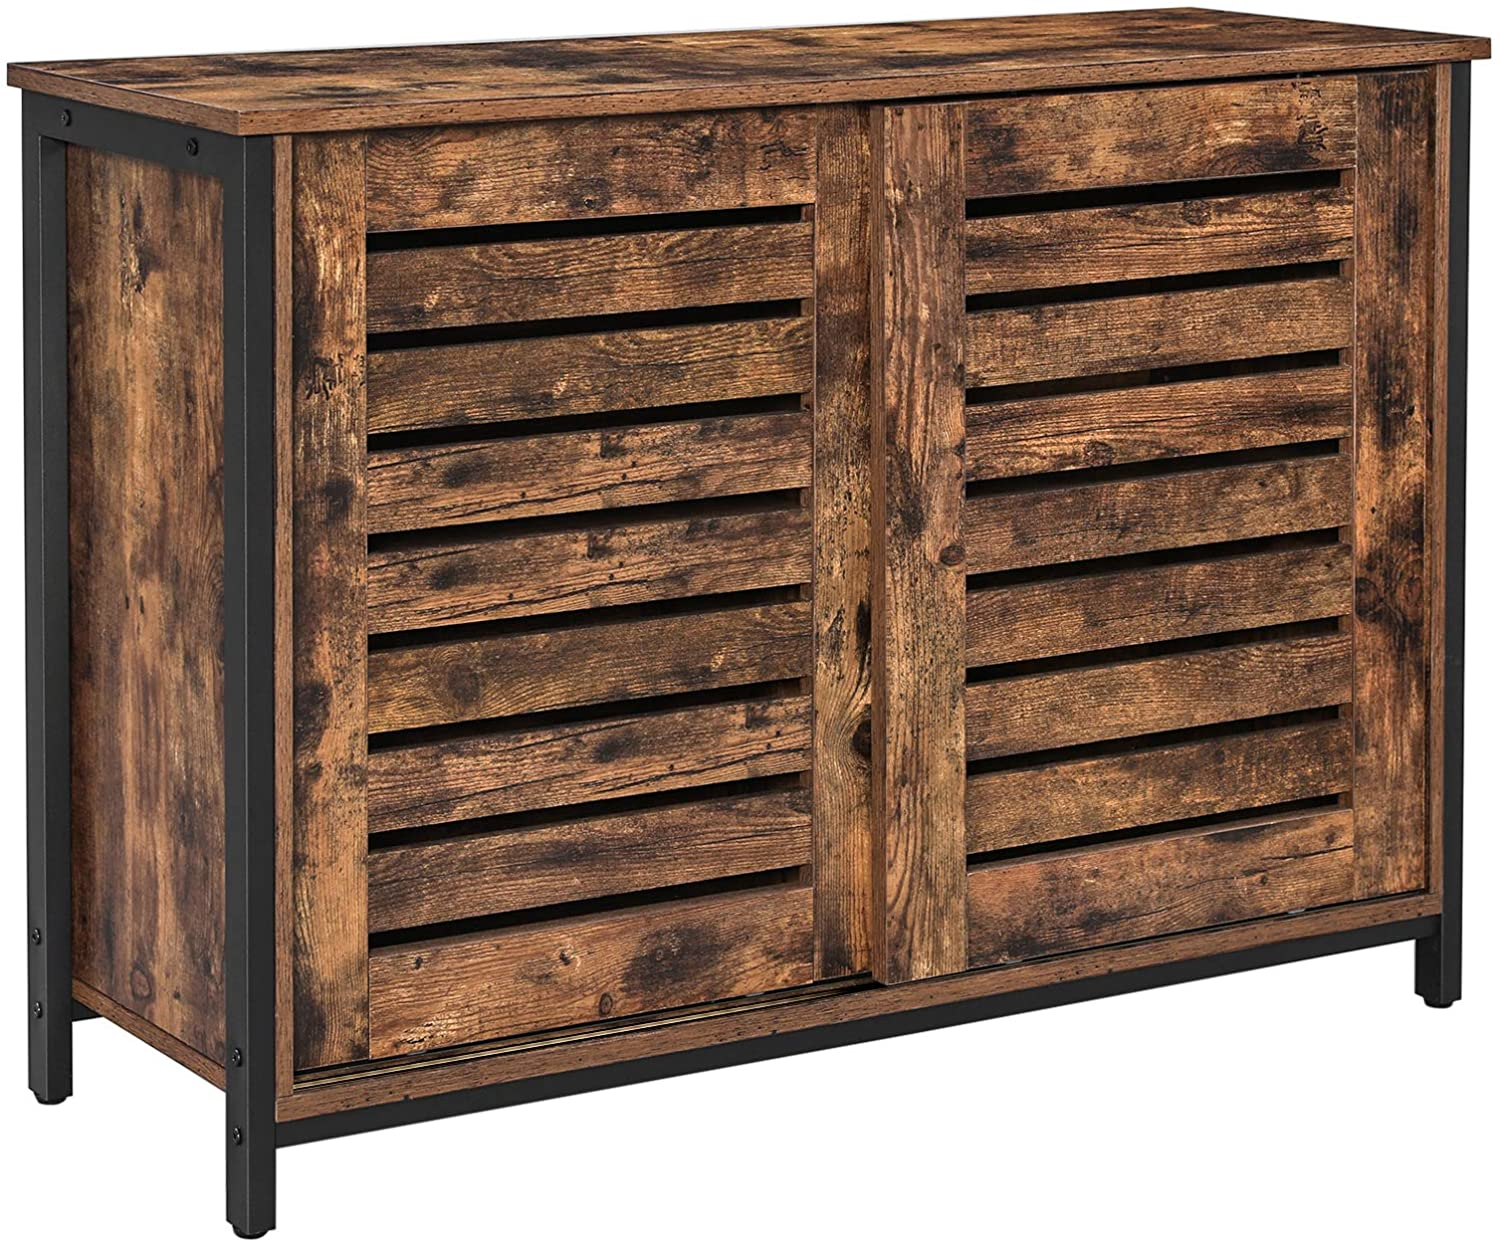 Enjoy fast, free nationwide shipping!  Family owned and operated, HawkinsWoodshop.com is your one stop shop for affordable furniture.  Shop HawkinsWoodshop.com for solid wood & metal modern, traditional, contemporary, industrial, custom, rustic, and farmhouse furniture including our Ryan Shutter Sliding Doors Floor Cabinet.